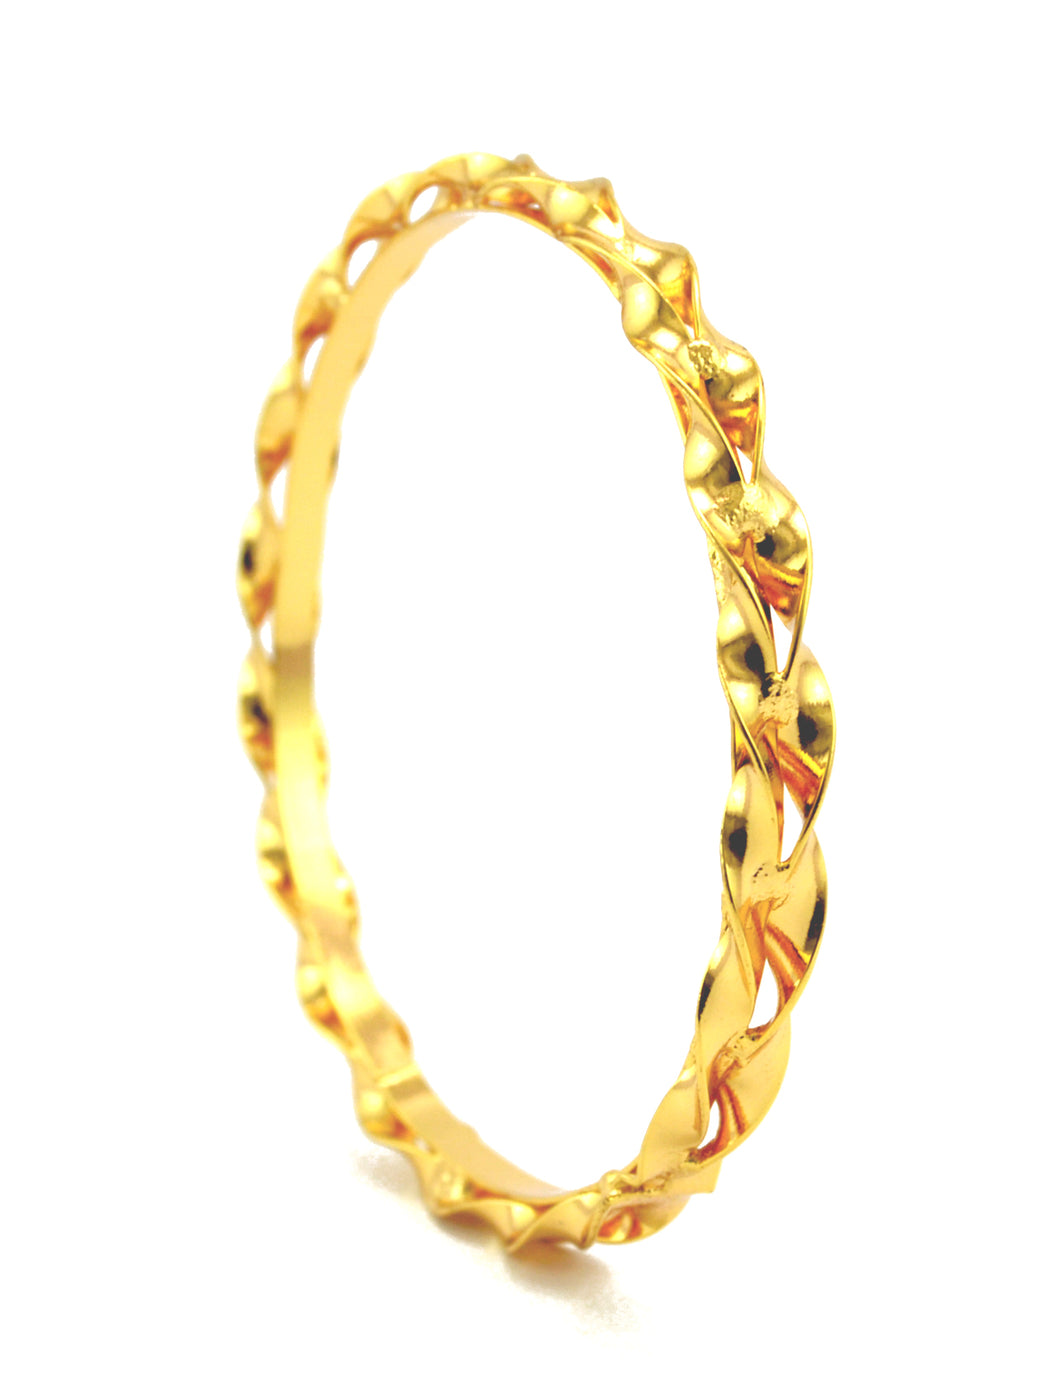 Trendy gold plated twisted bangle - Bangle by Shrayathi